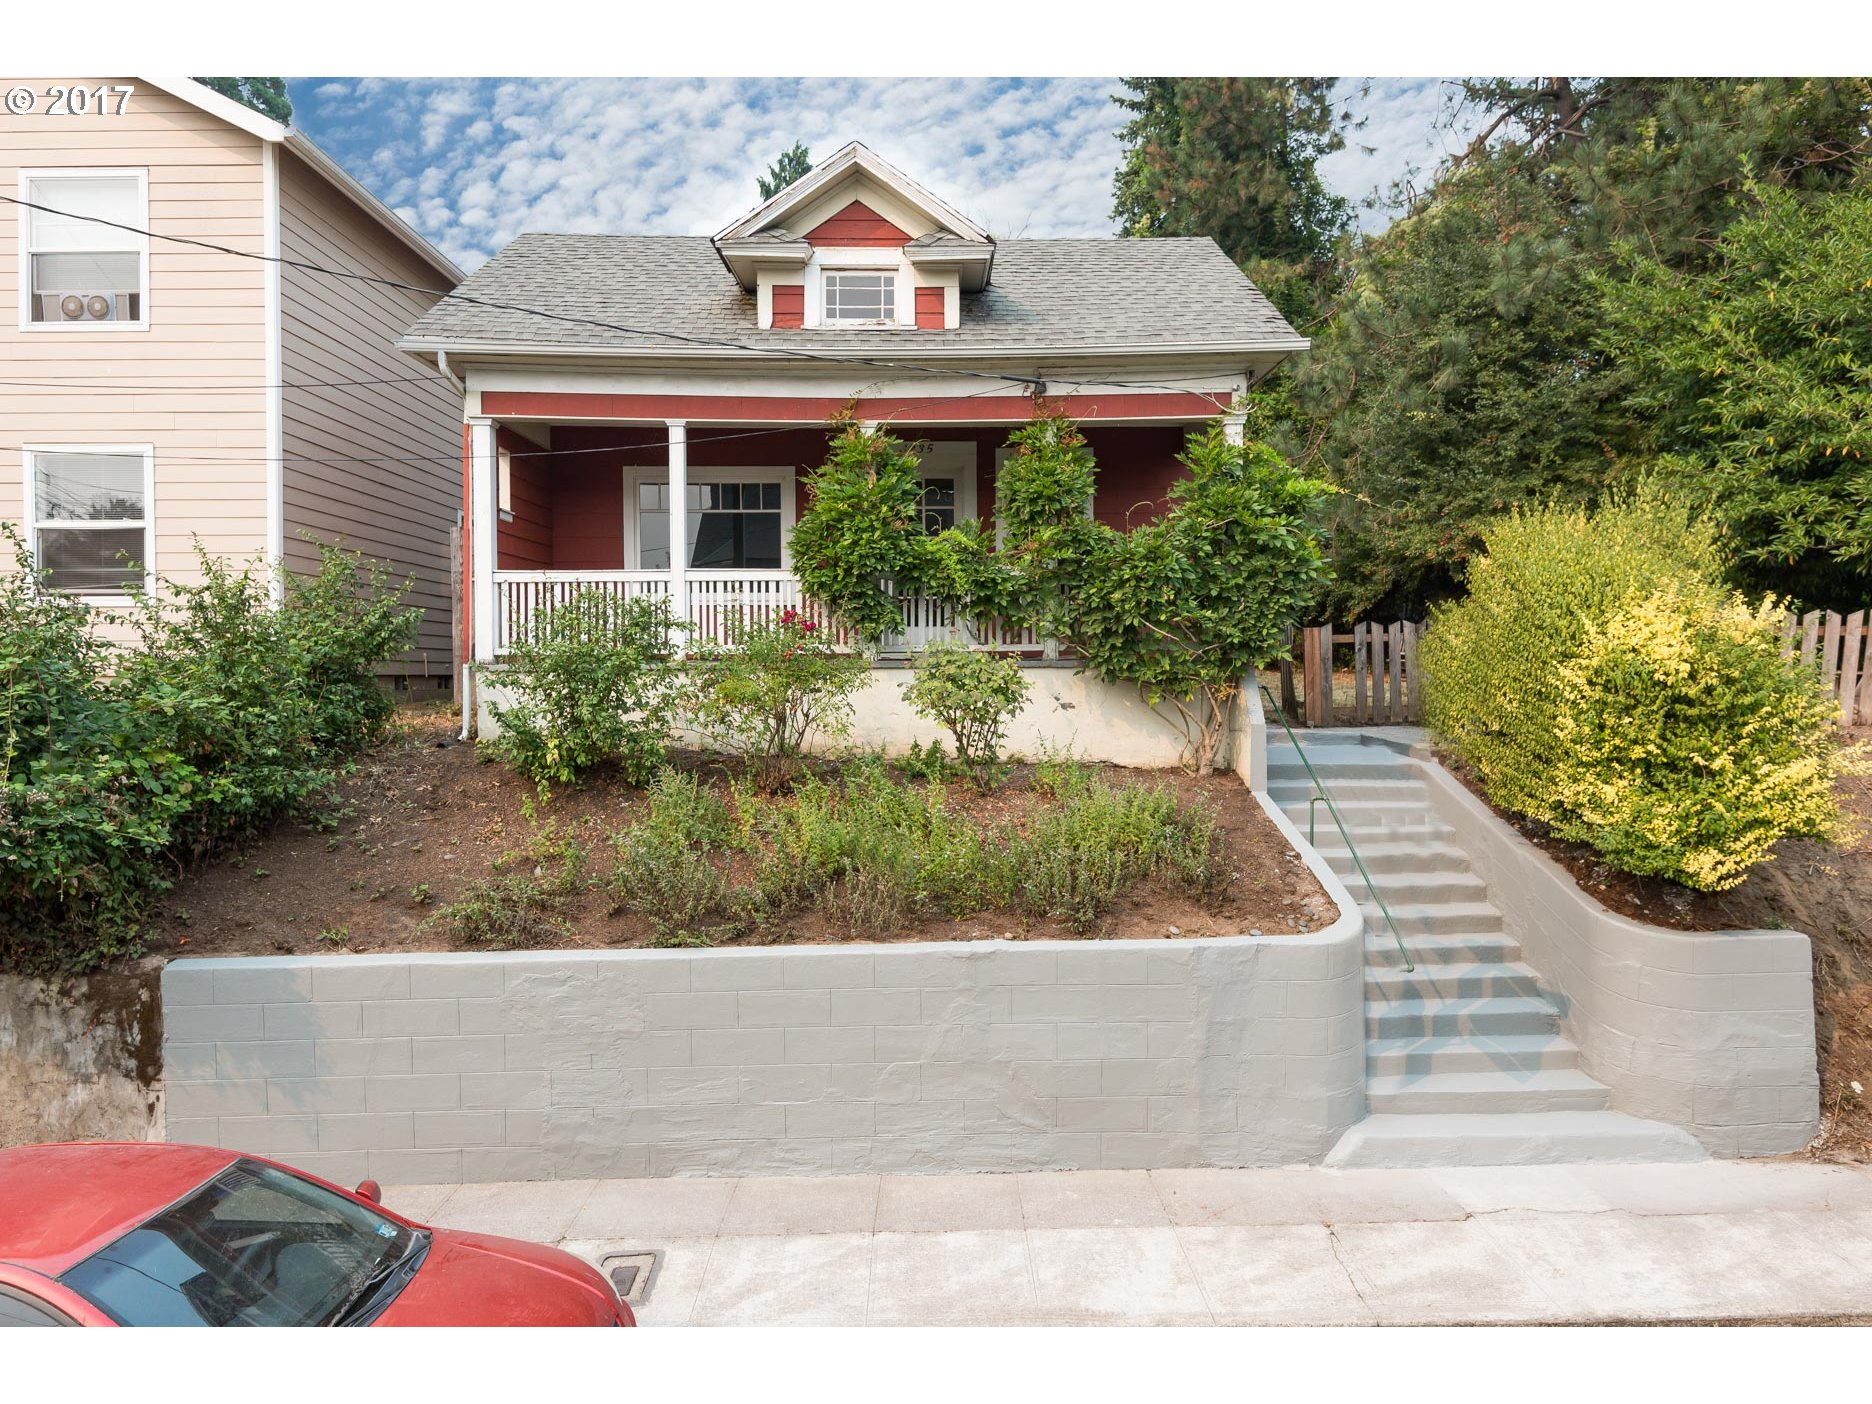 Delightful light filled 3 br 2 bath bungalow with porch, kitchen/ nook, vaulted ceiling, skylights, fir floors, Marmoleum, claw foot tub.  Designer details and appeal throughout. Winning combination EX zoning/res allows for multiple uses(live/work). Many great NOPO destinations nearby. 4 blocks to Mississippi. 2 blocks to Max. Has 60 feet of street frontage and backs to ODOT land. Owner is licensed Realtor. Buyer to do diligence.